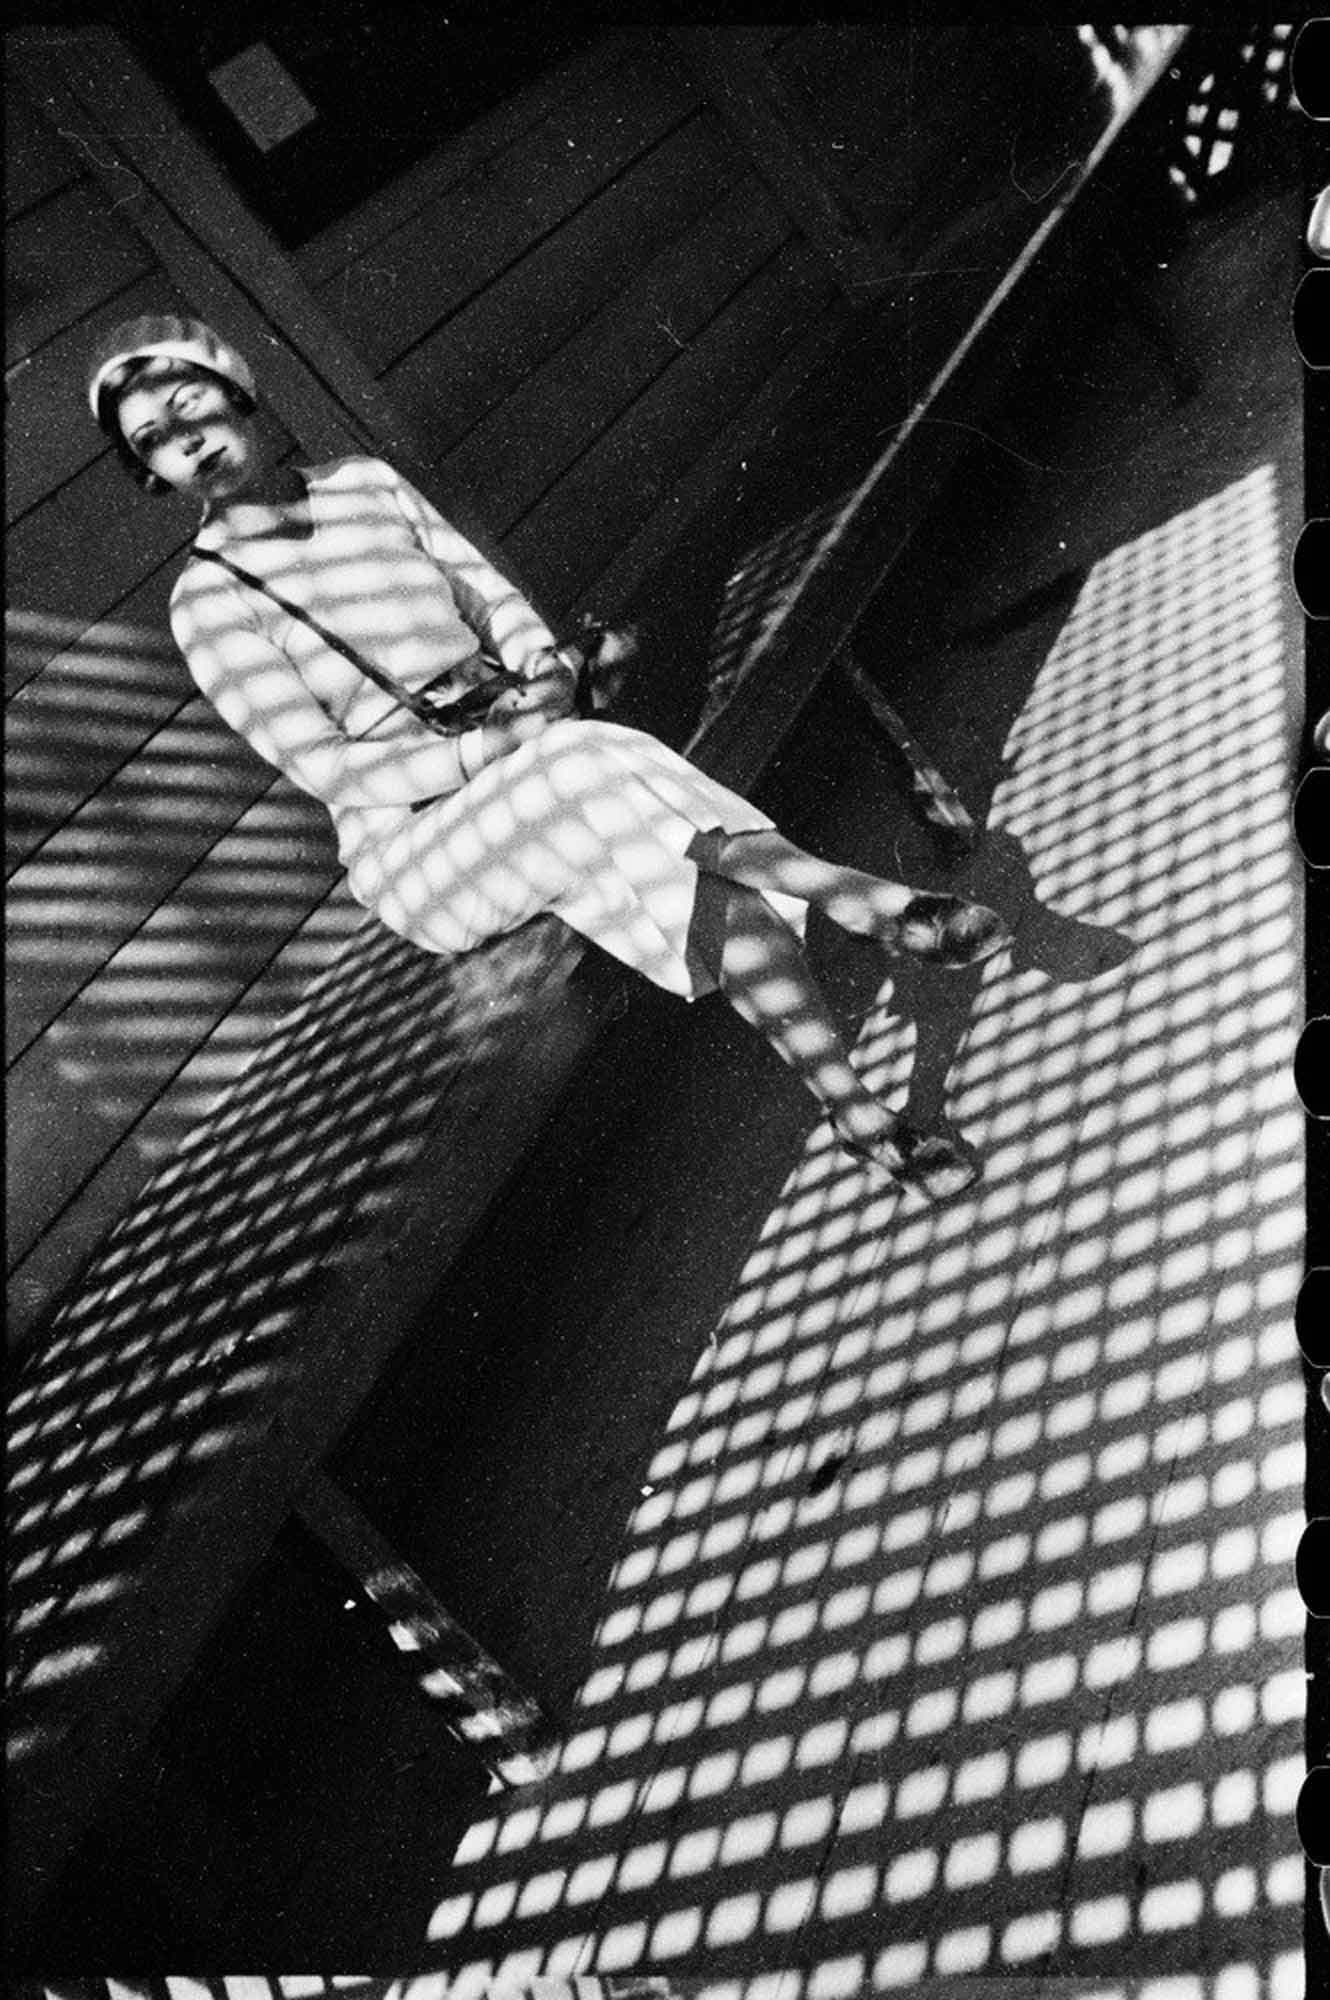 Aleksandr-Rodchenko-Photo_006